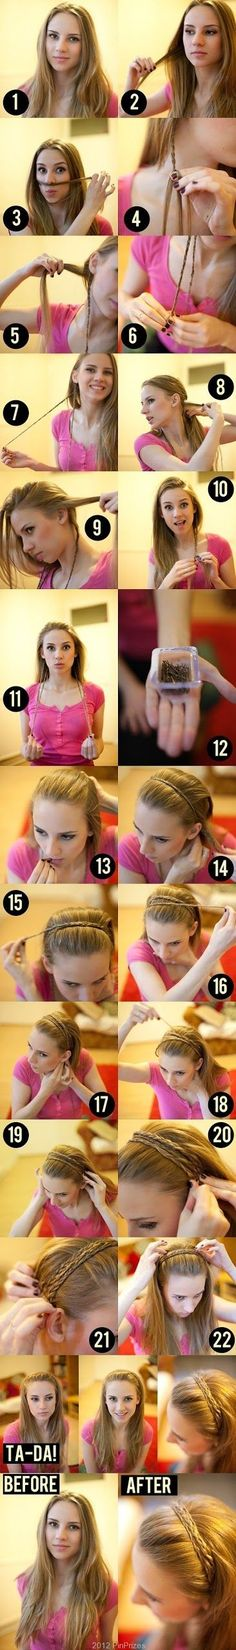 braid your hair and use it as a headband | hairstyles tutorial  Thinking of doing this but once I've got my three braids loosely braid them together over your head